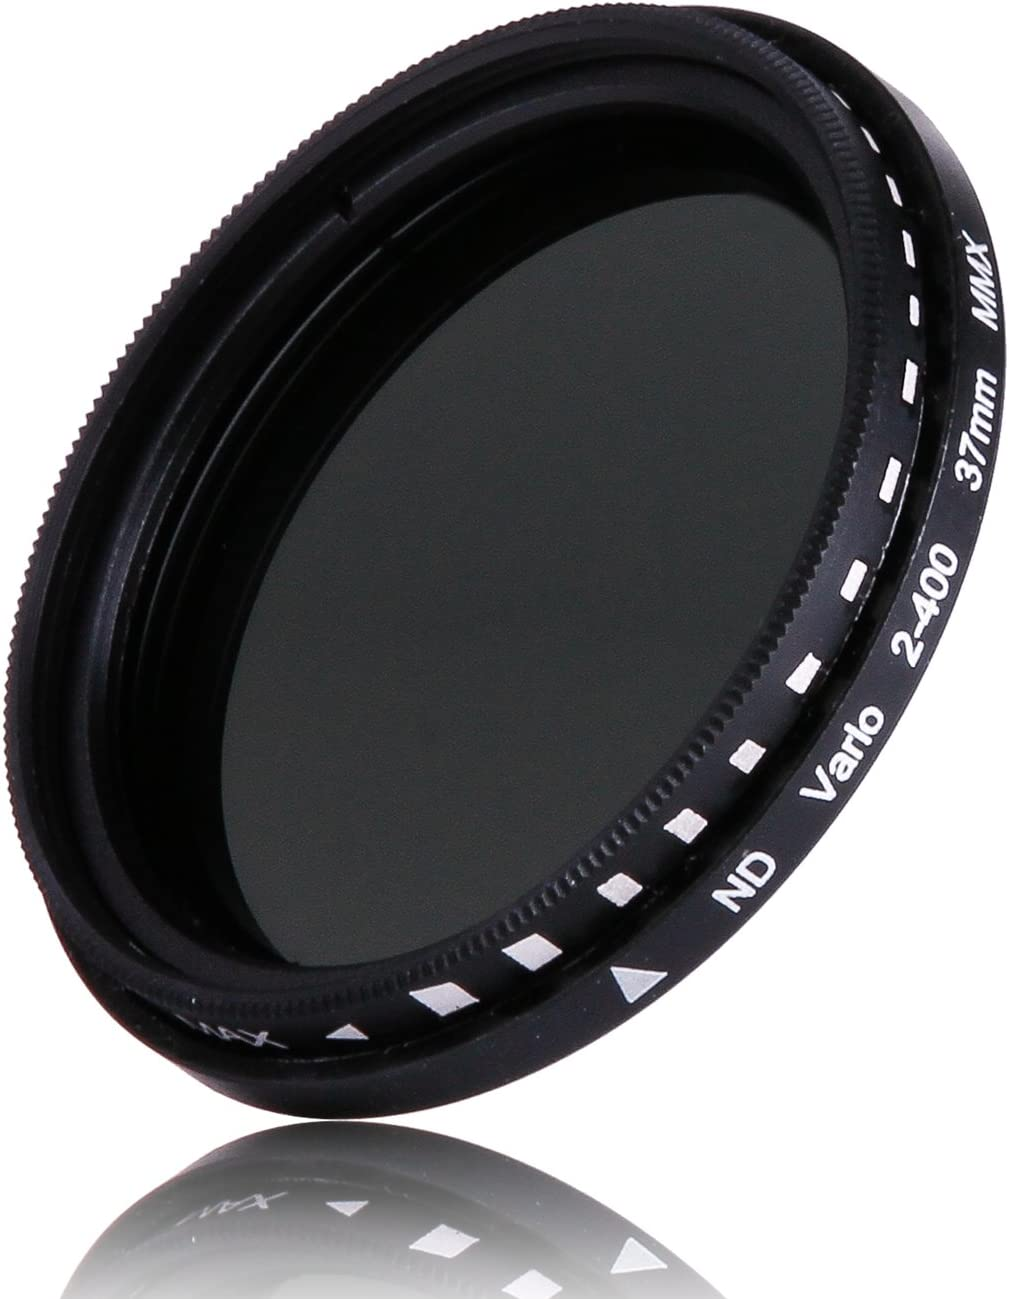 1Set 37mm 46mm 49mm 52mm 55mm 58mm 62mm 67mm 72mm 77mm Neutral Density Adjustable ND2 to ND400 Lens Filter Protector 72mm